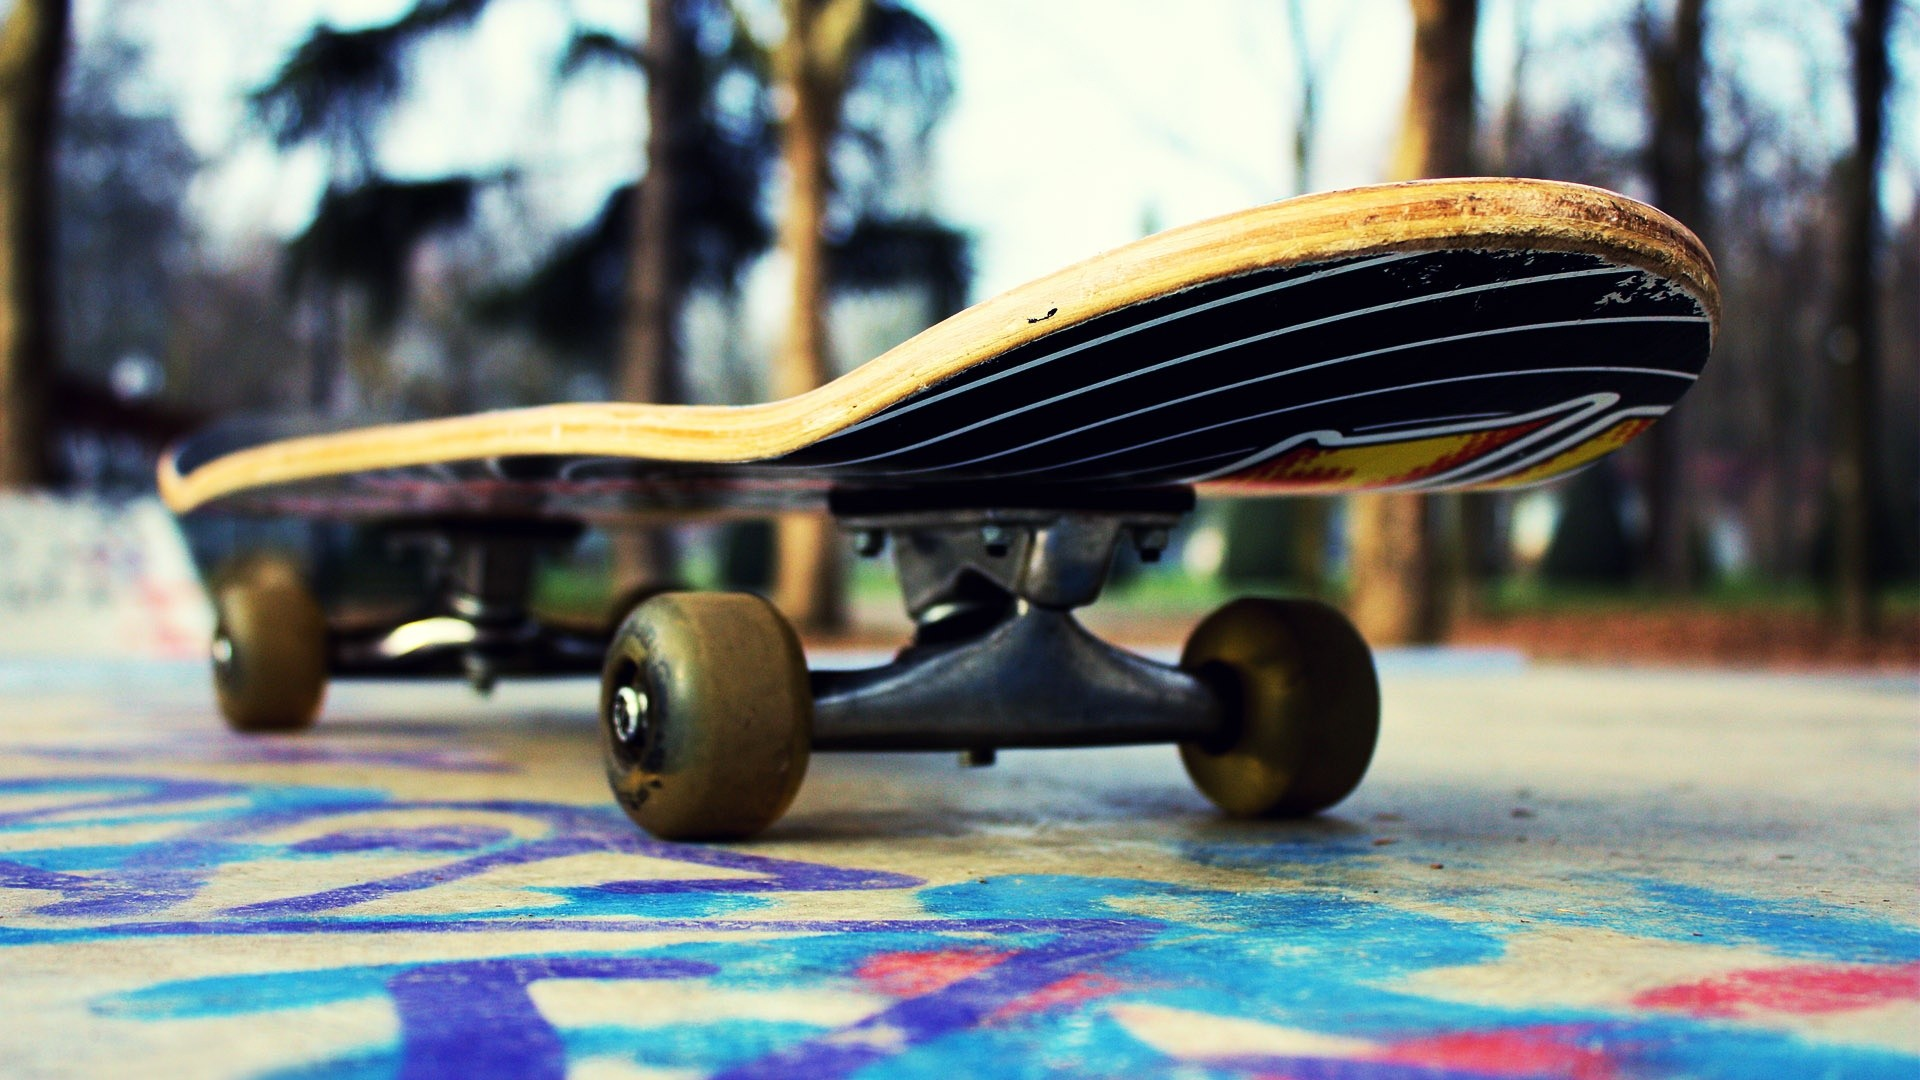 Skateboard Wallpaper